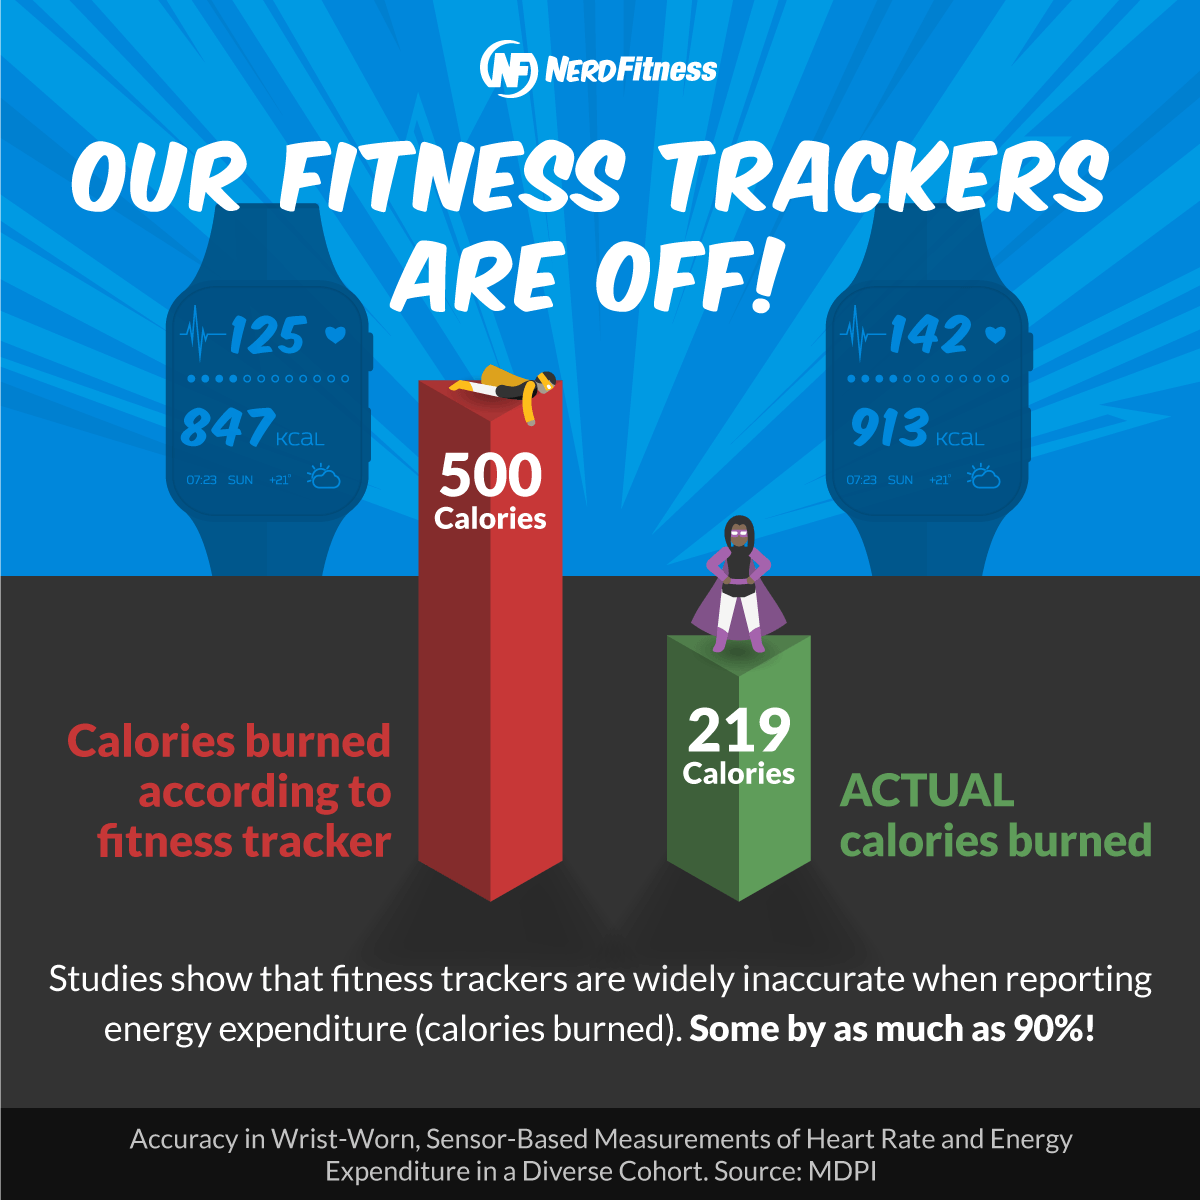 This infographic shows calorie discrepancies from fitness trackers compared to actual calories burned.